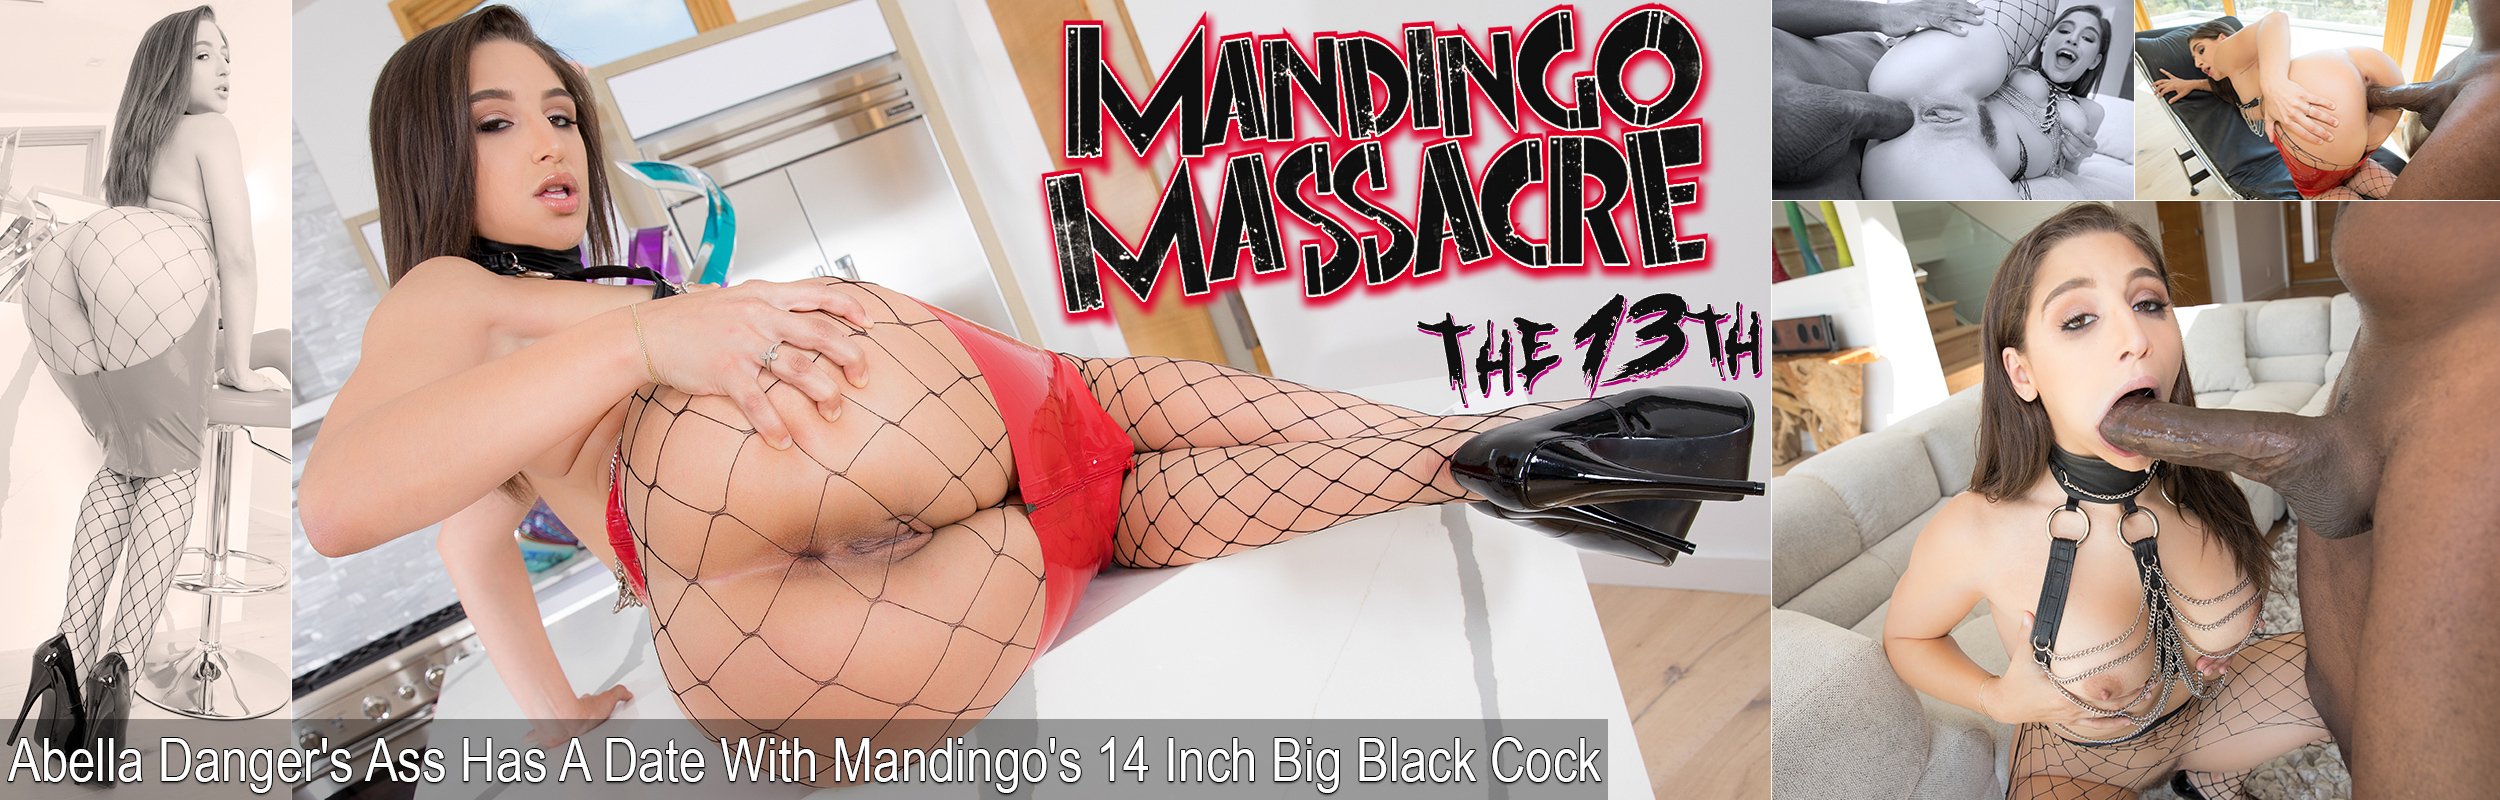 Abella Danger's Ass Has A Date With Mandingo's 14 Inch Big Black Cock